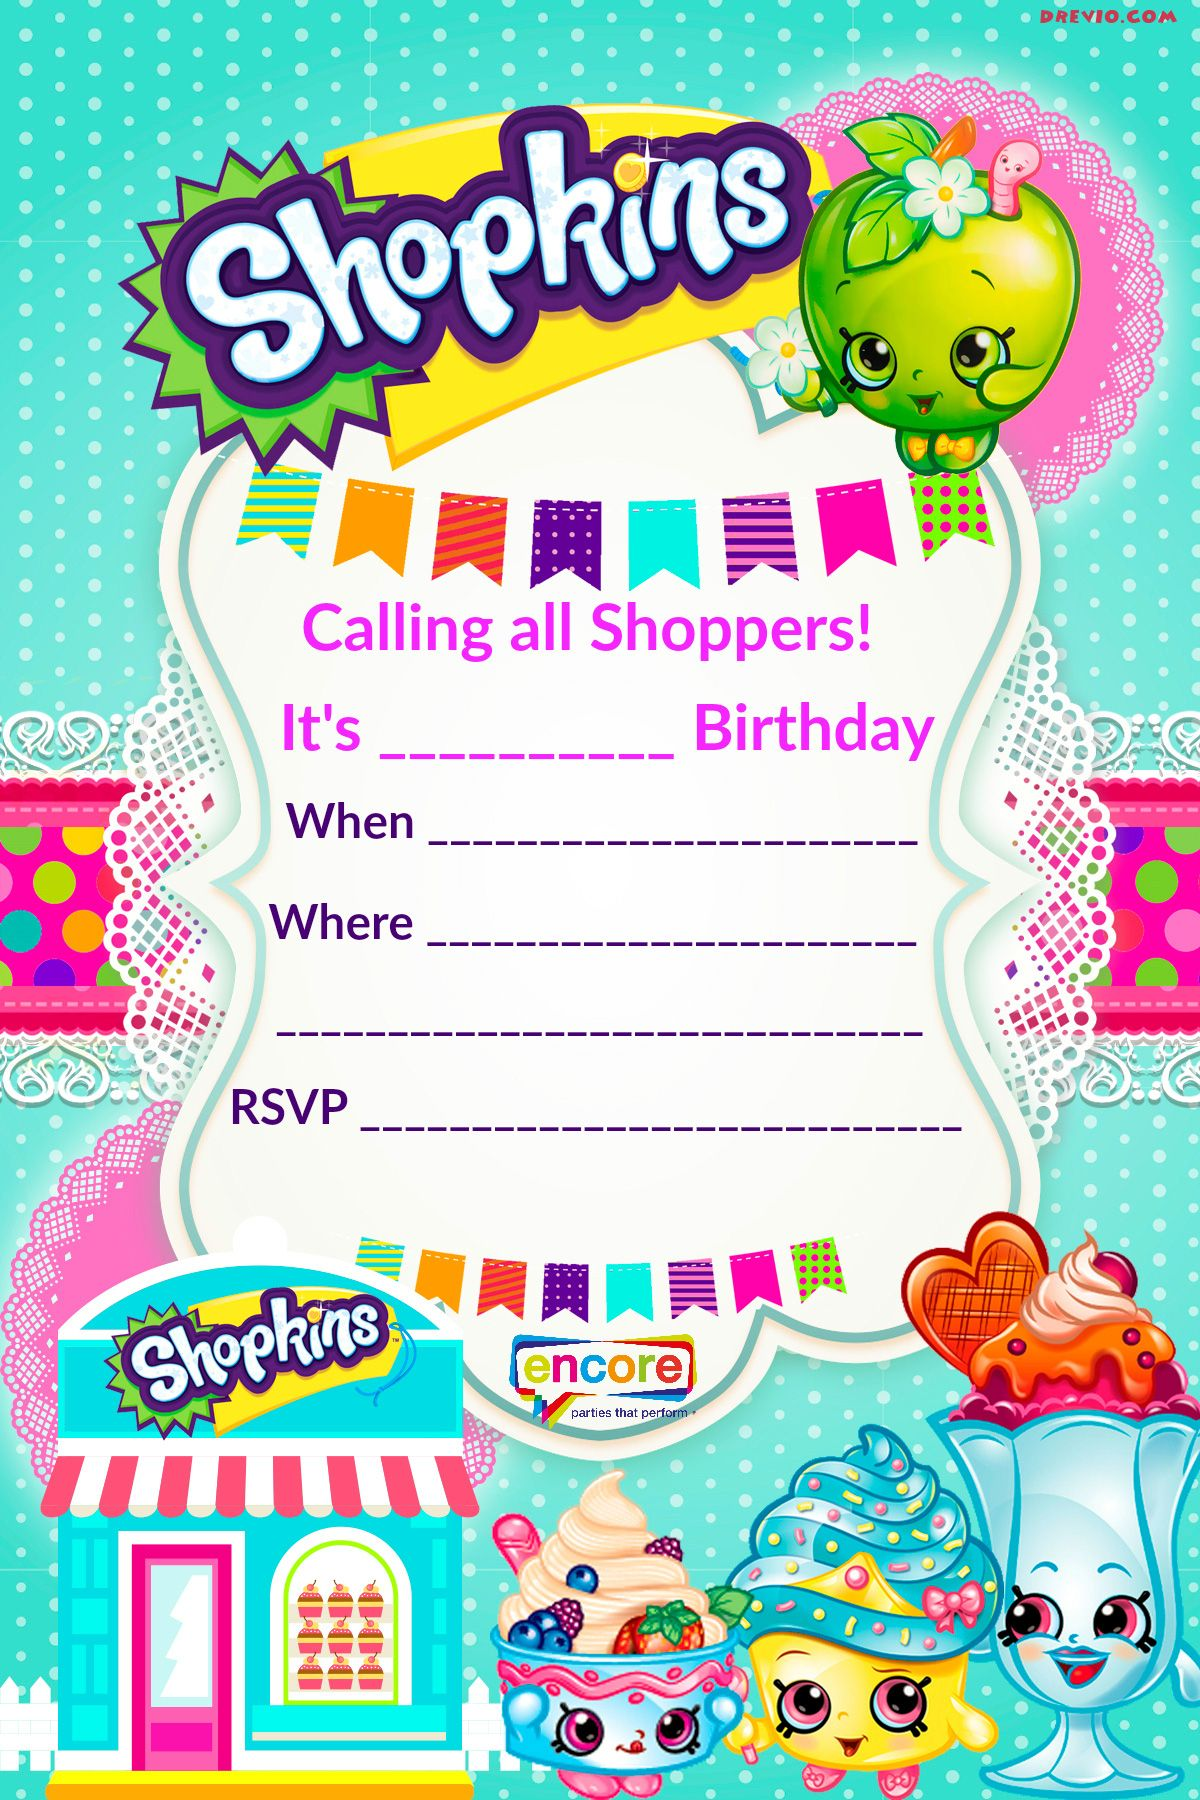 picture regarding Shopkins Birthday Card Printable identified as Up to date Free of charge Printable Shopkins Birthday Invitation